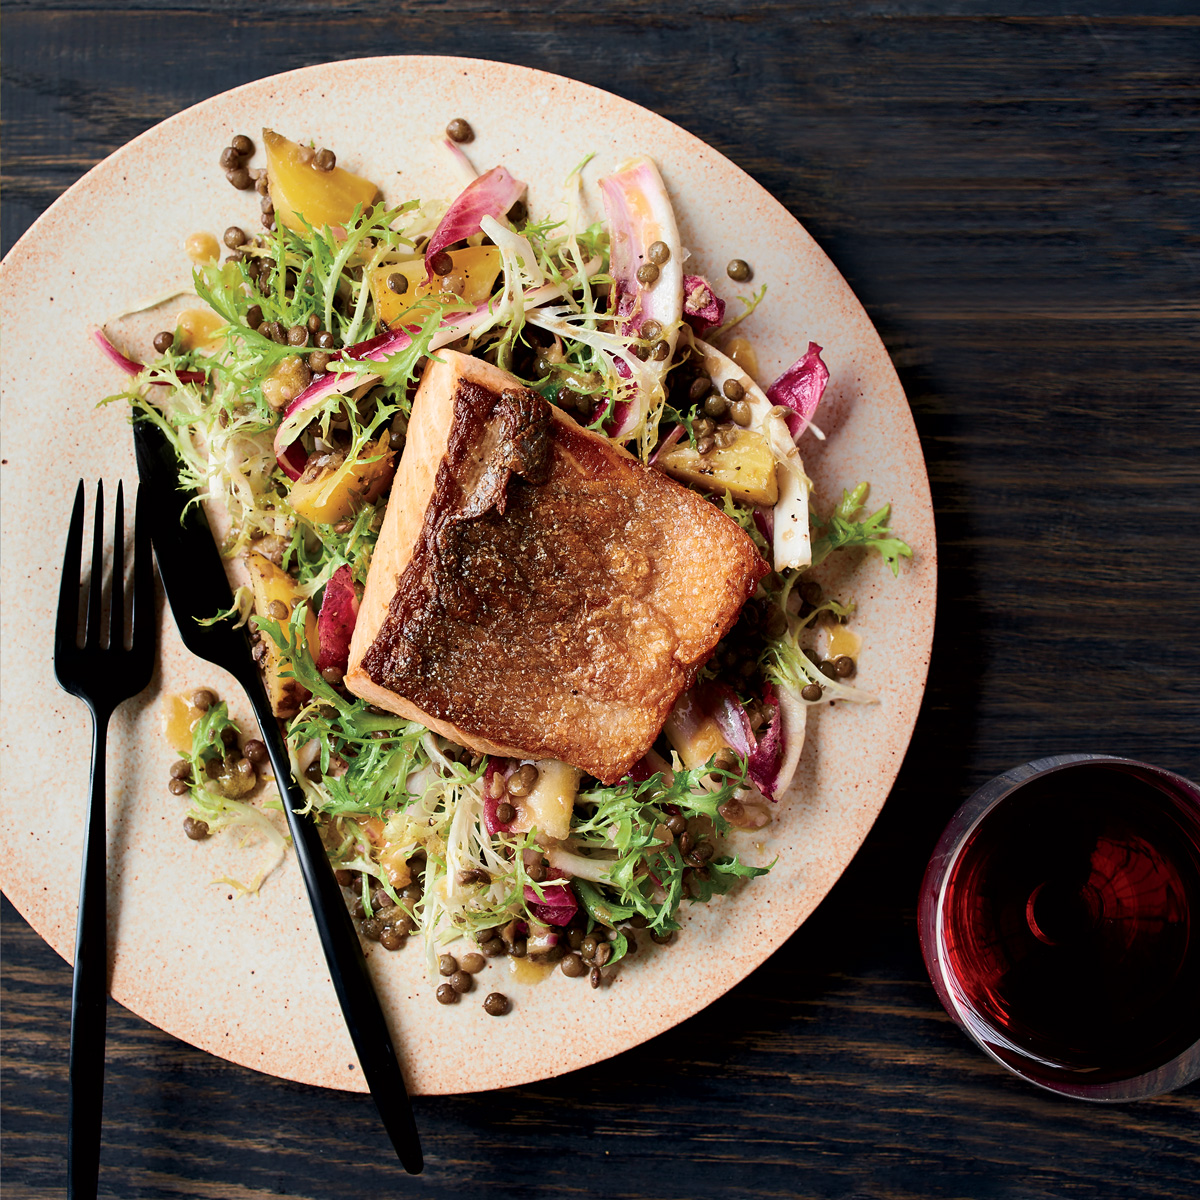 Salmon with Lentil-Beet Salad